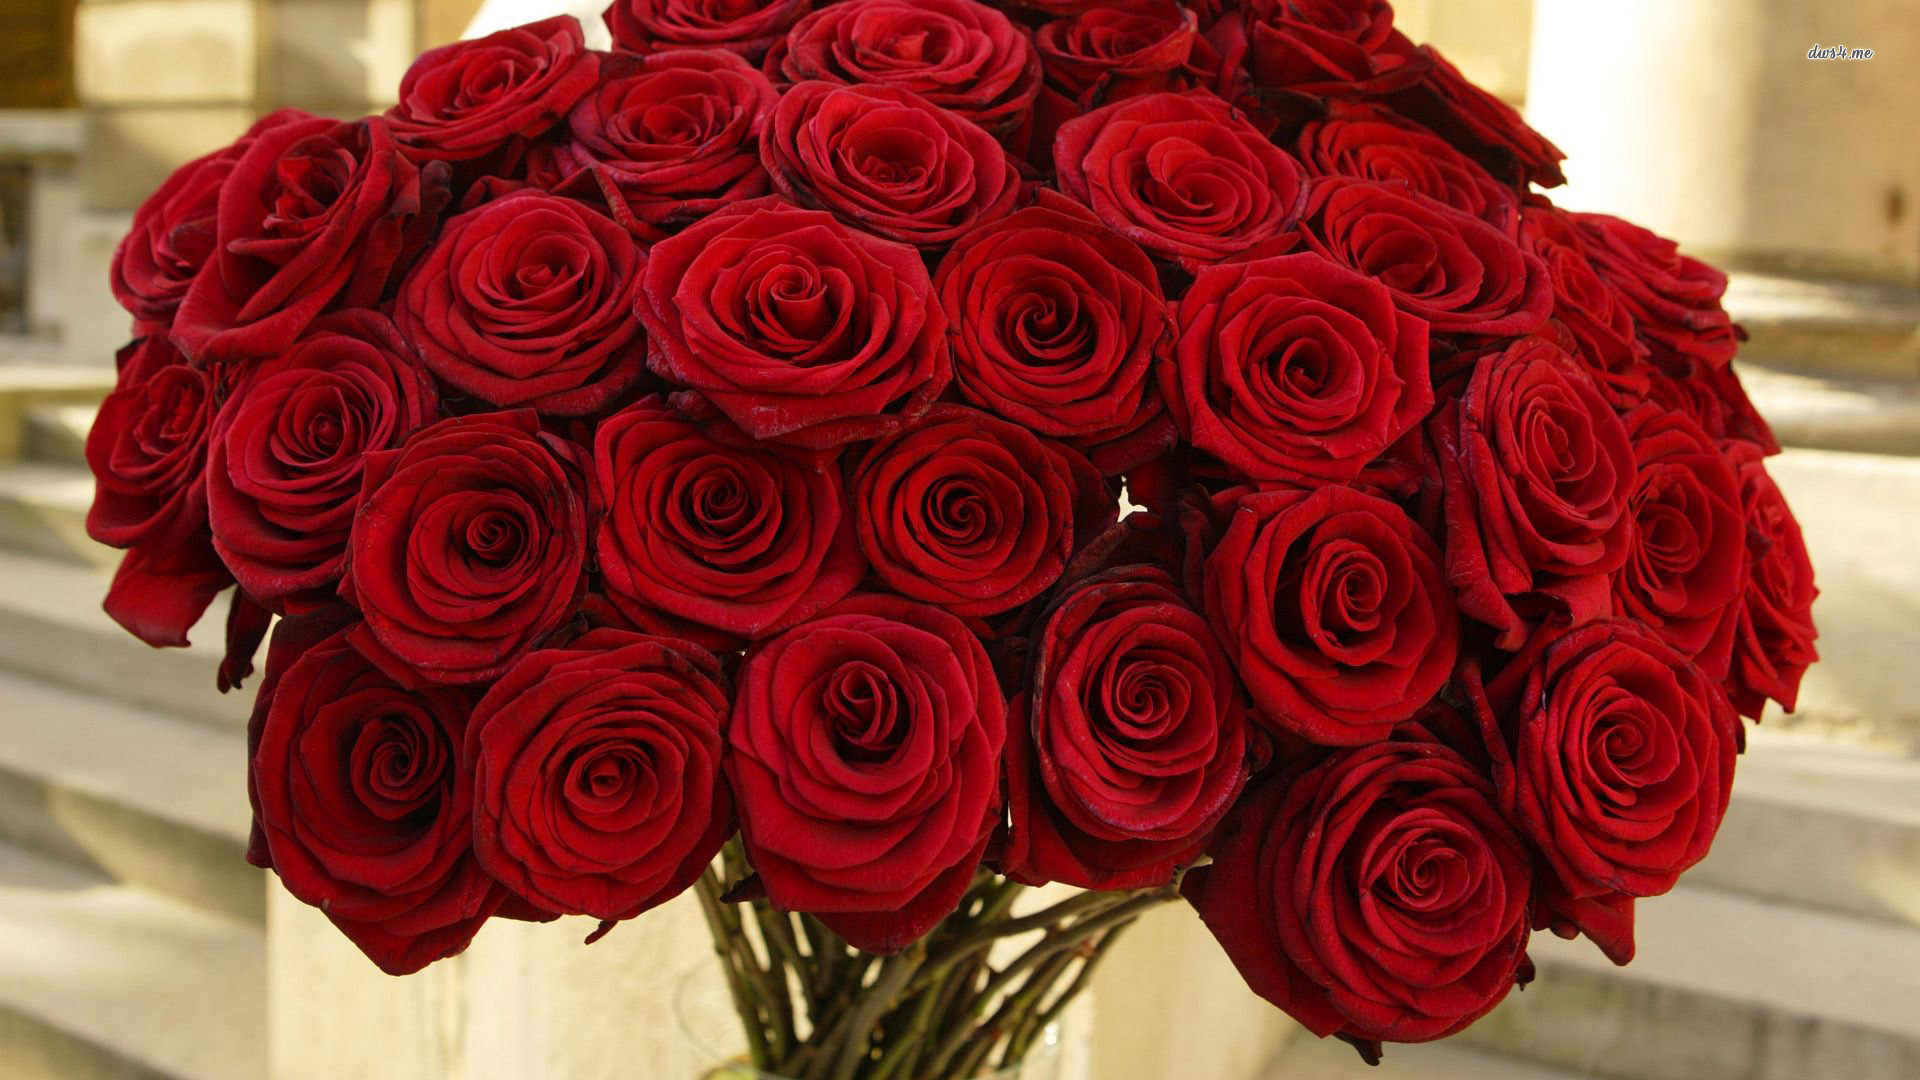 Red Roses Wallpapers HD A20